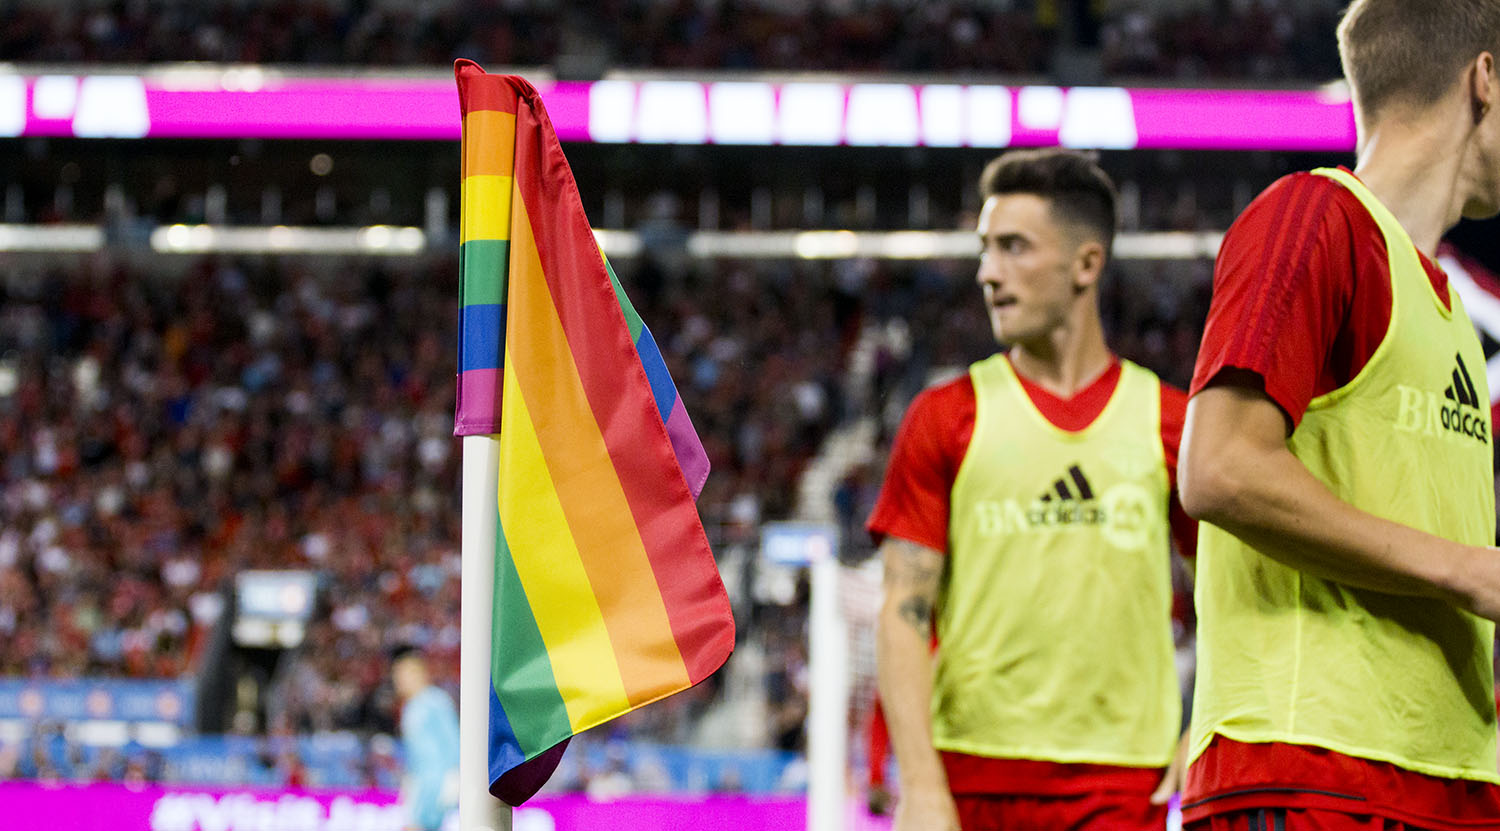 Pride night BMO Field saw that the corner flags had the appropriate flags for the occasion ahead of the Pride Parade and festival in Toronto. Image by Dennis Marciniak of denMAR Media.